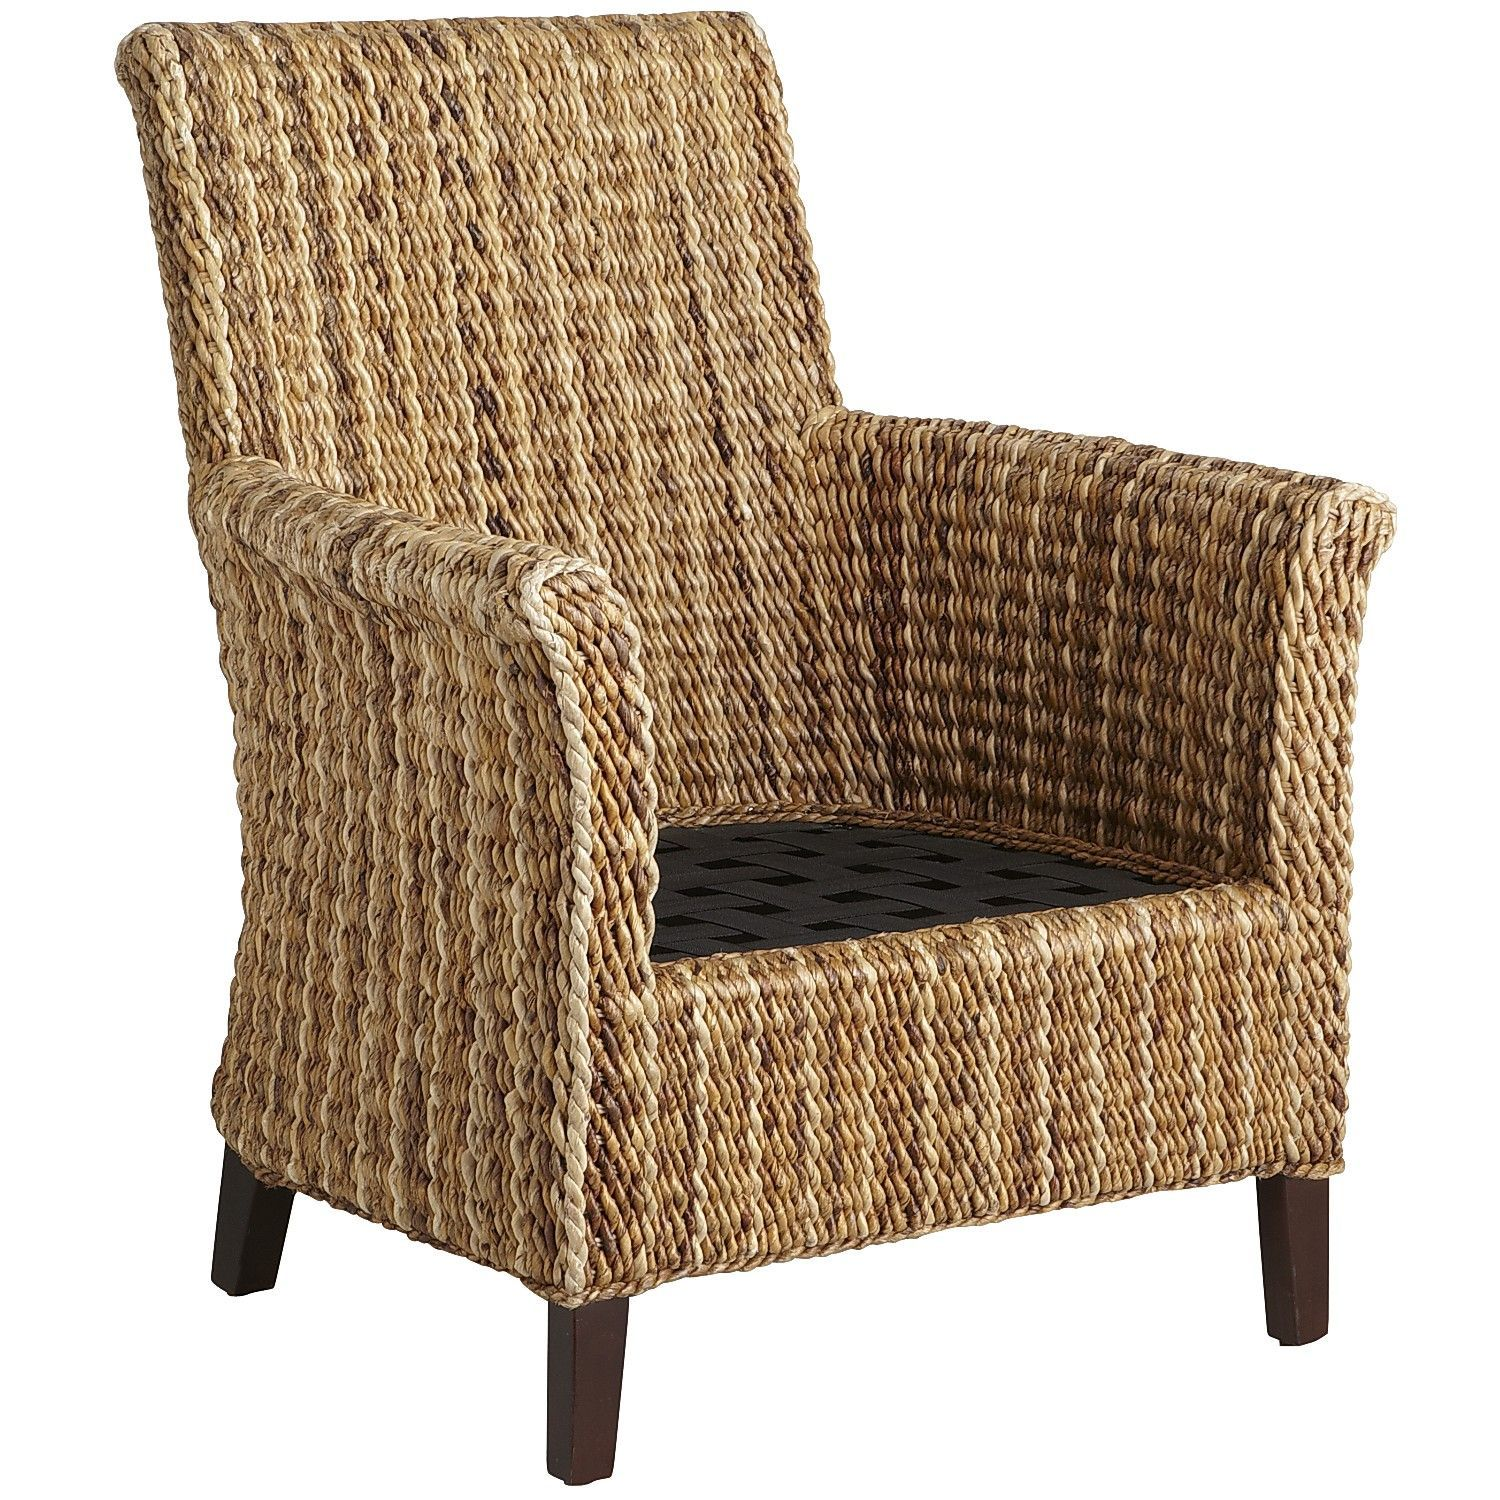 Incredible Pier 1 Banana Leaf Armchair I Would Love Two Of These For Machost Co Dining Chair Design Ideas Machostcouk